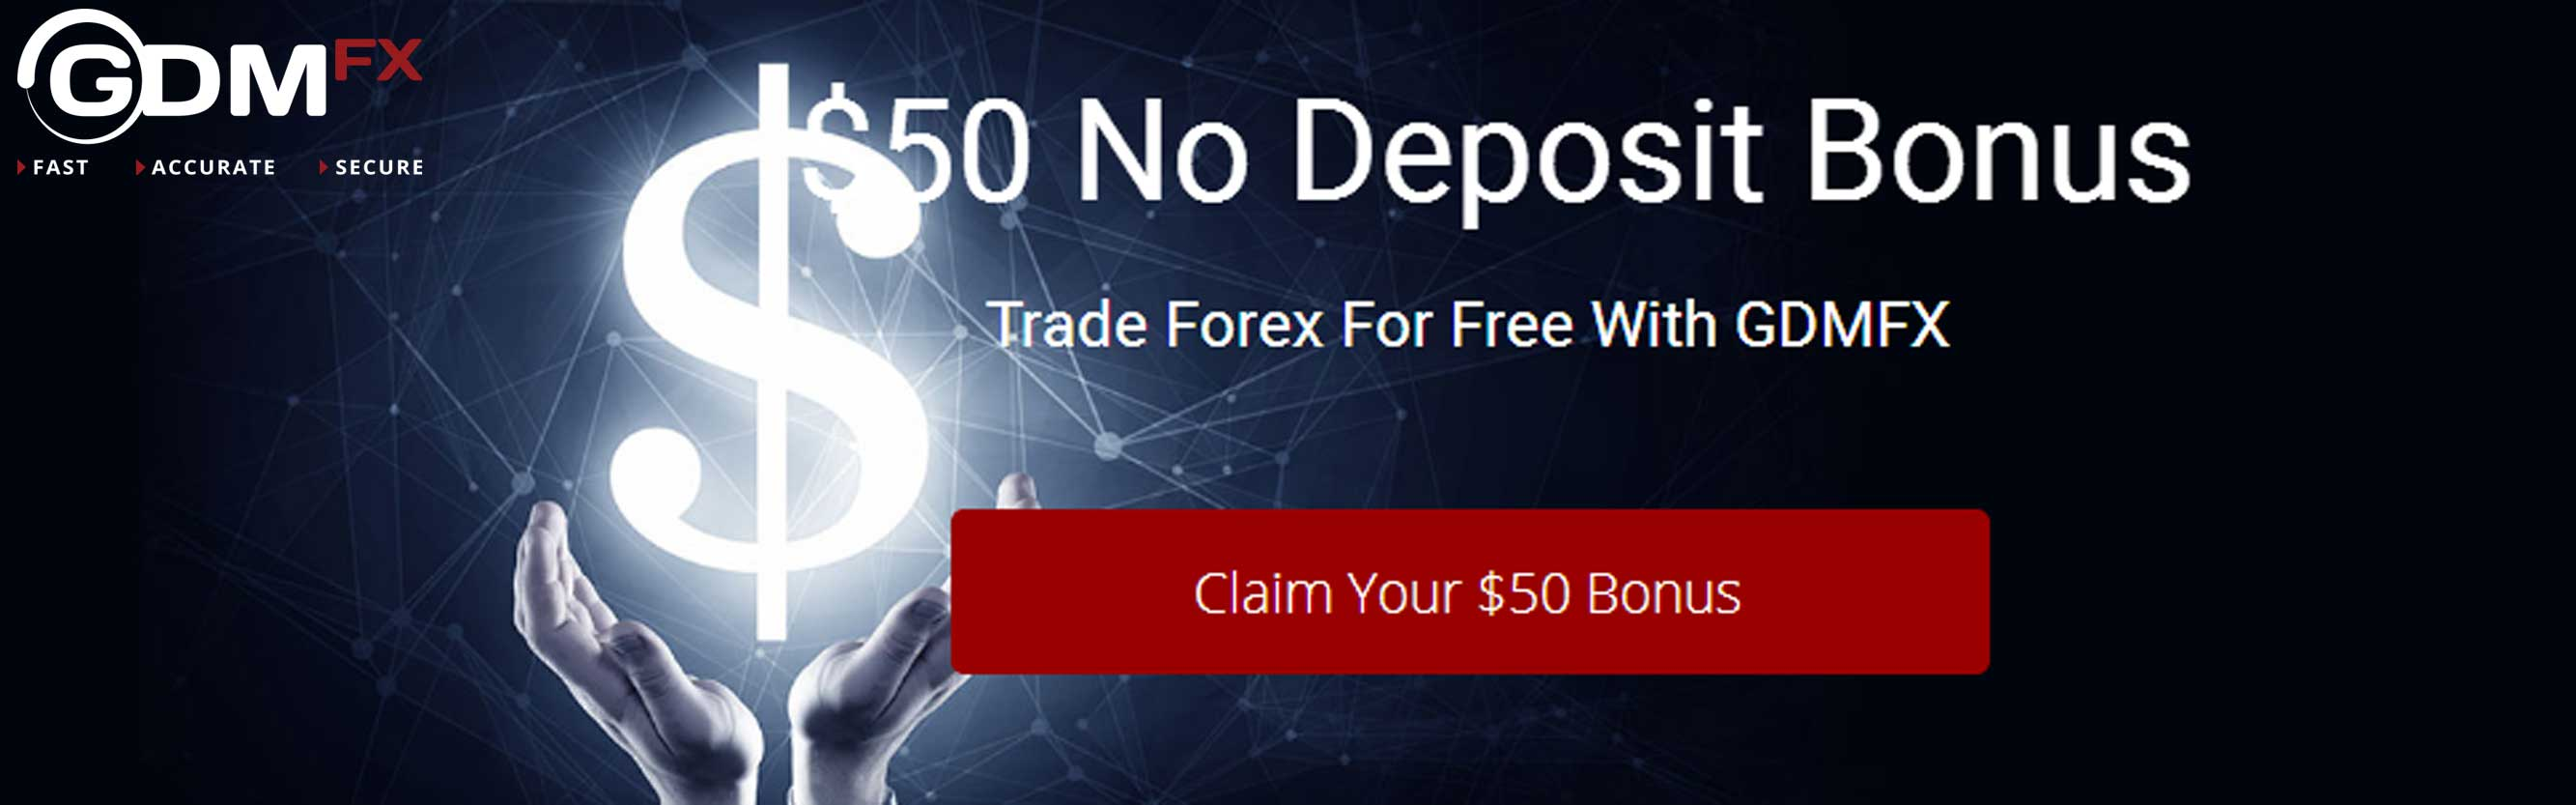 No deposit bonus for forex trading